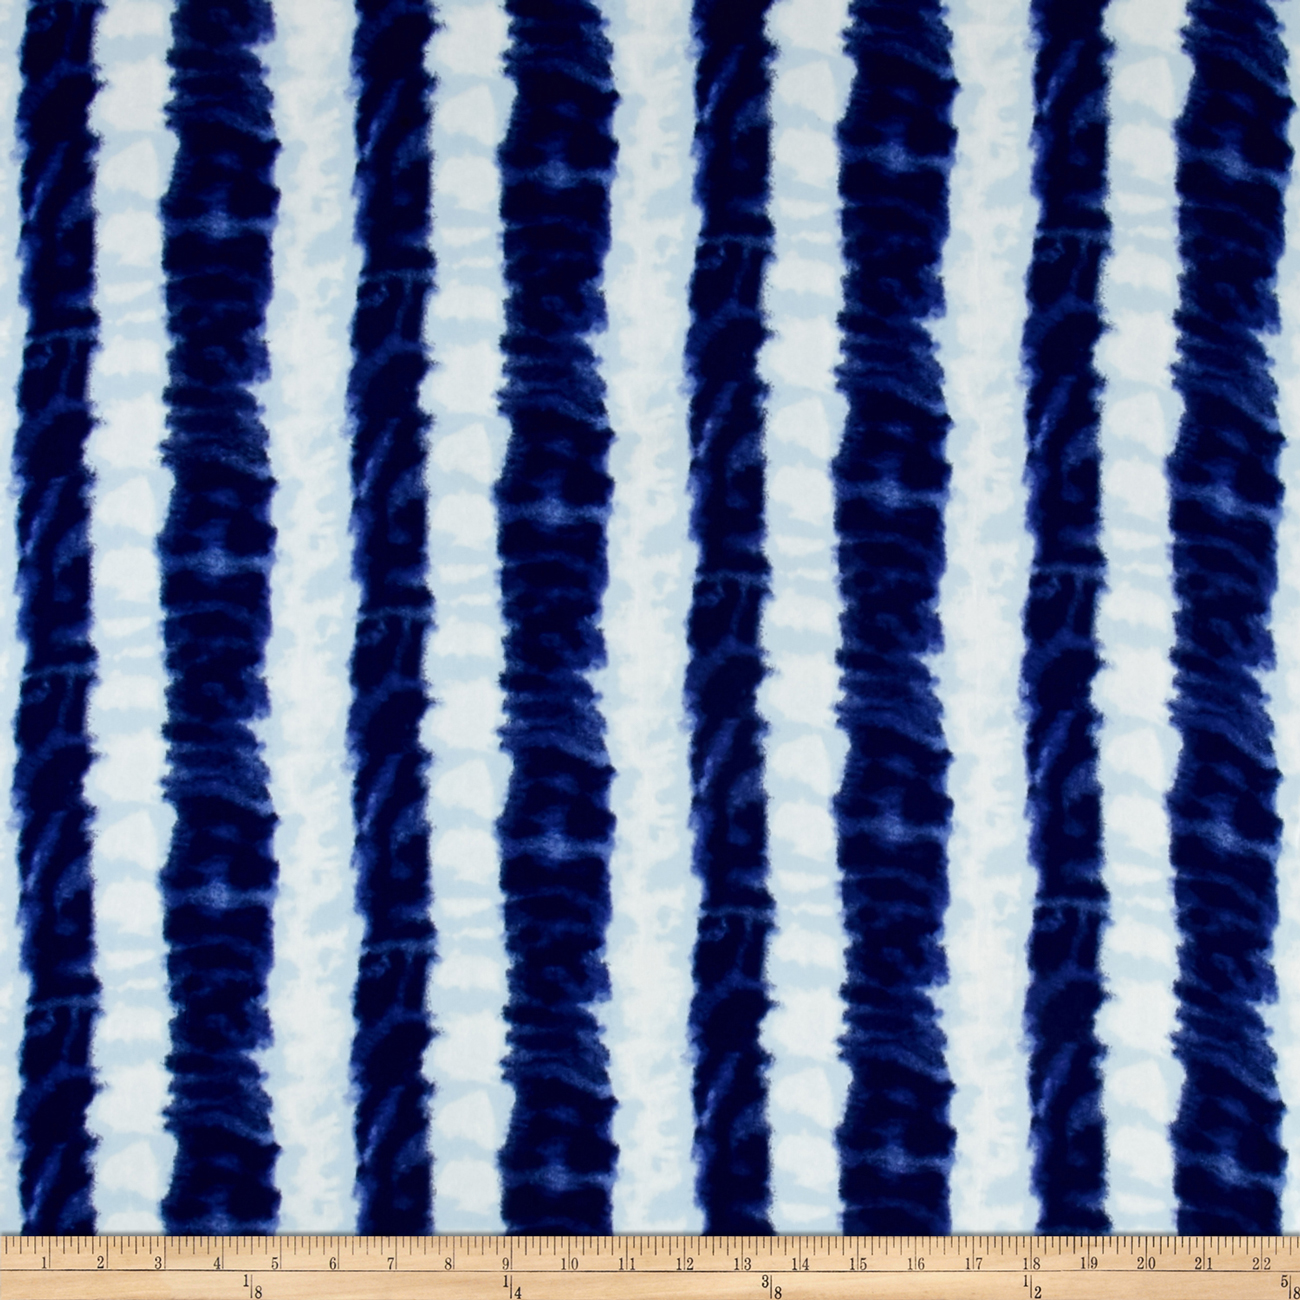 Ink Stripe Dobby Crepe Print Ivory/Cobalt Fabric by Neiman in USA